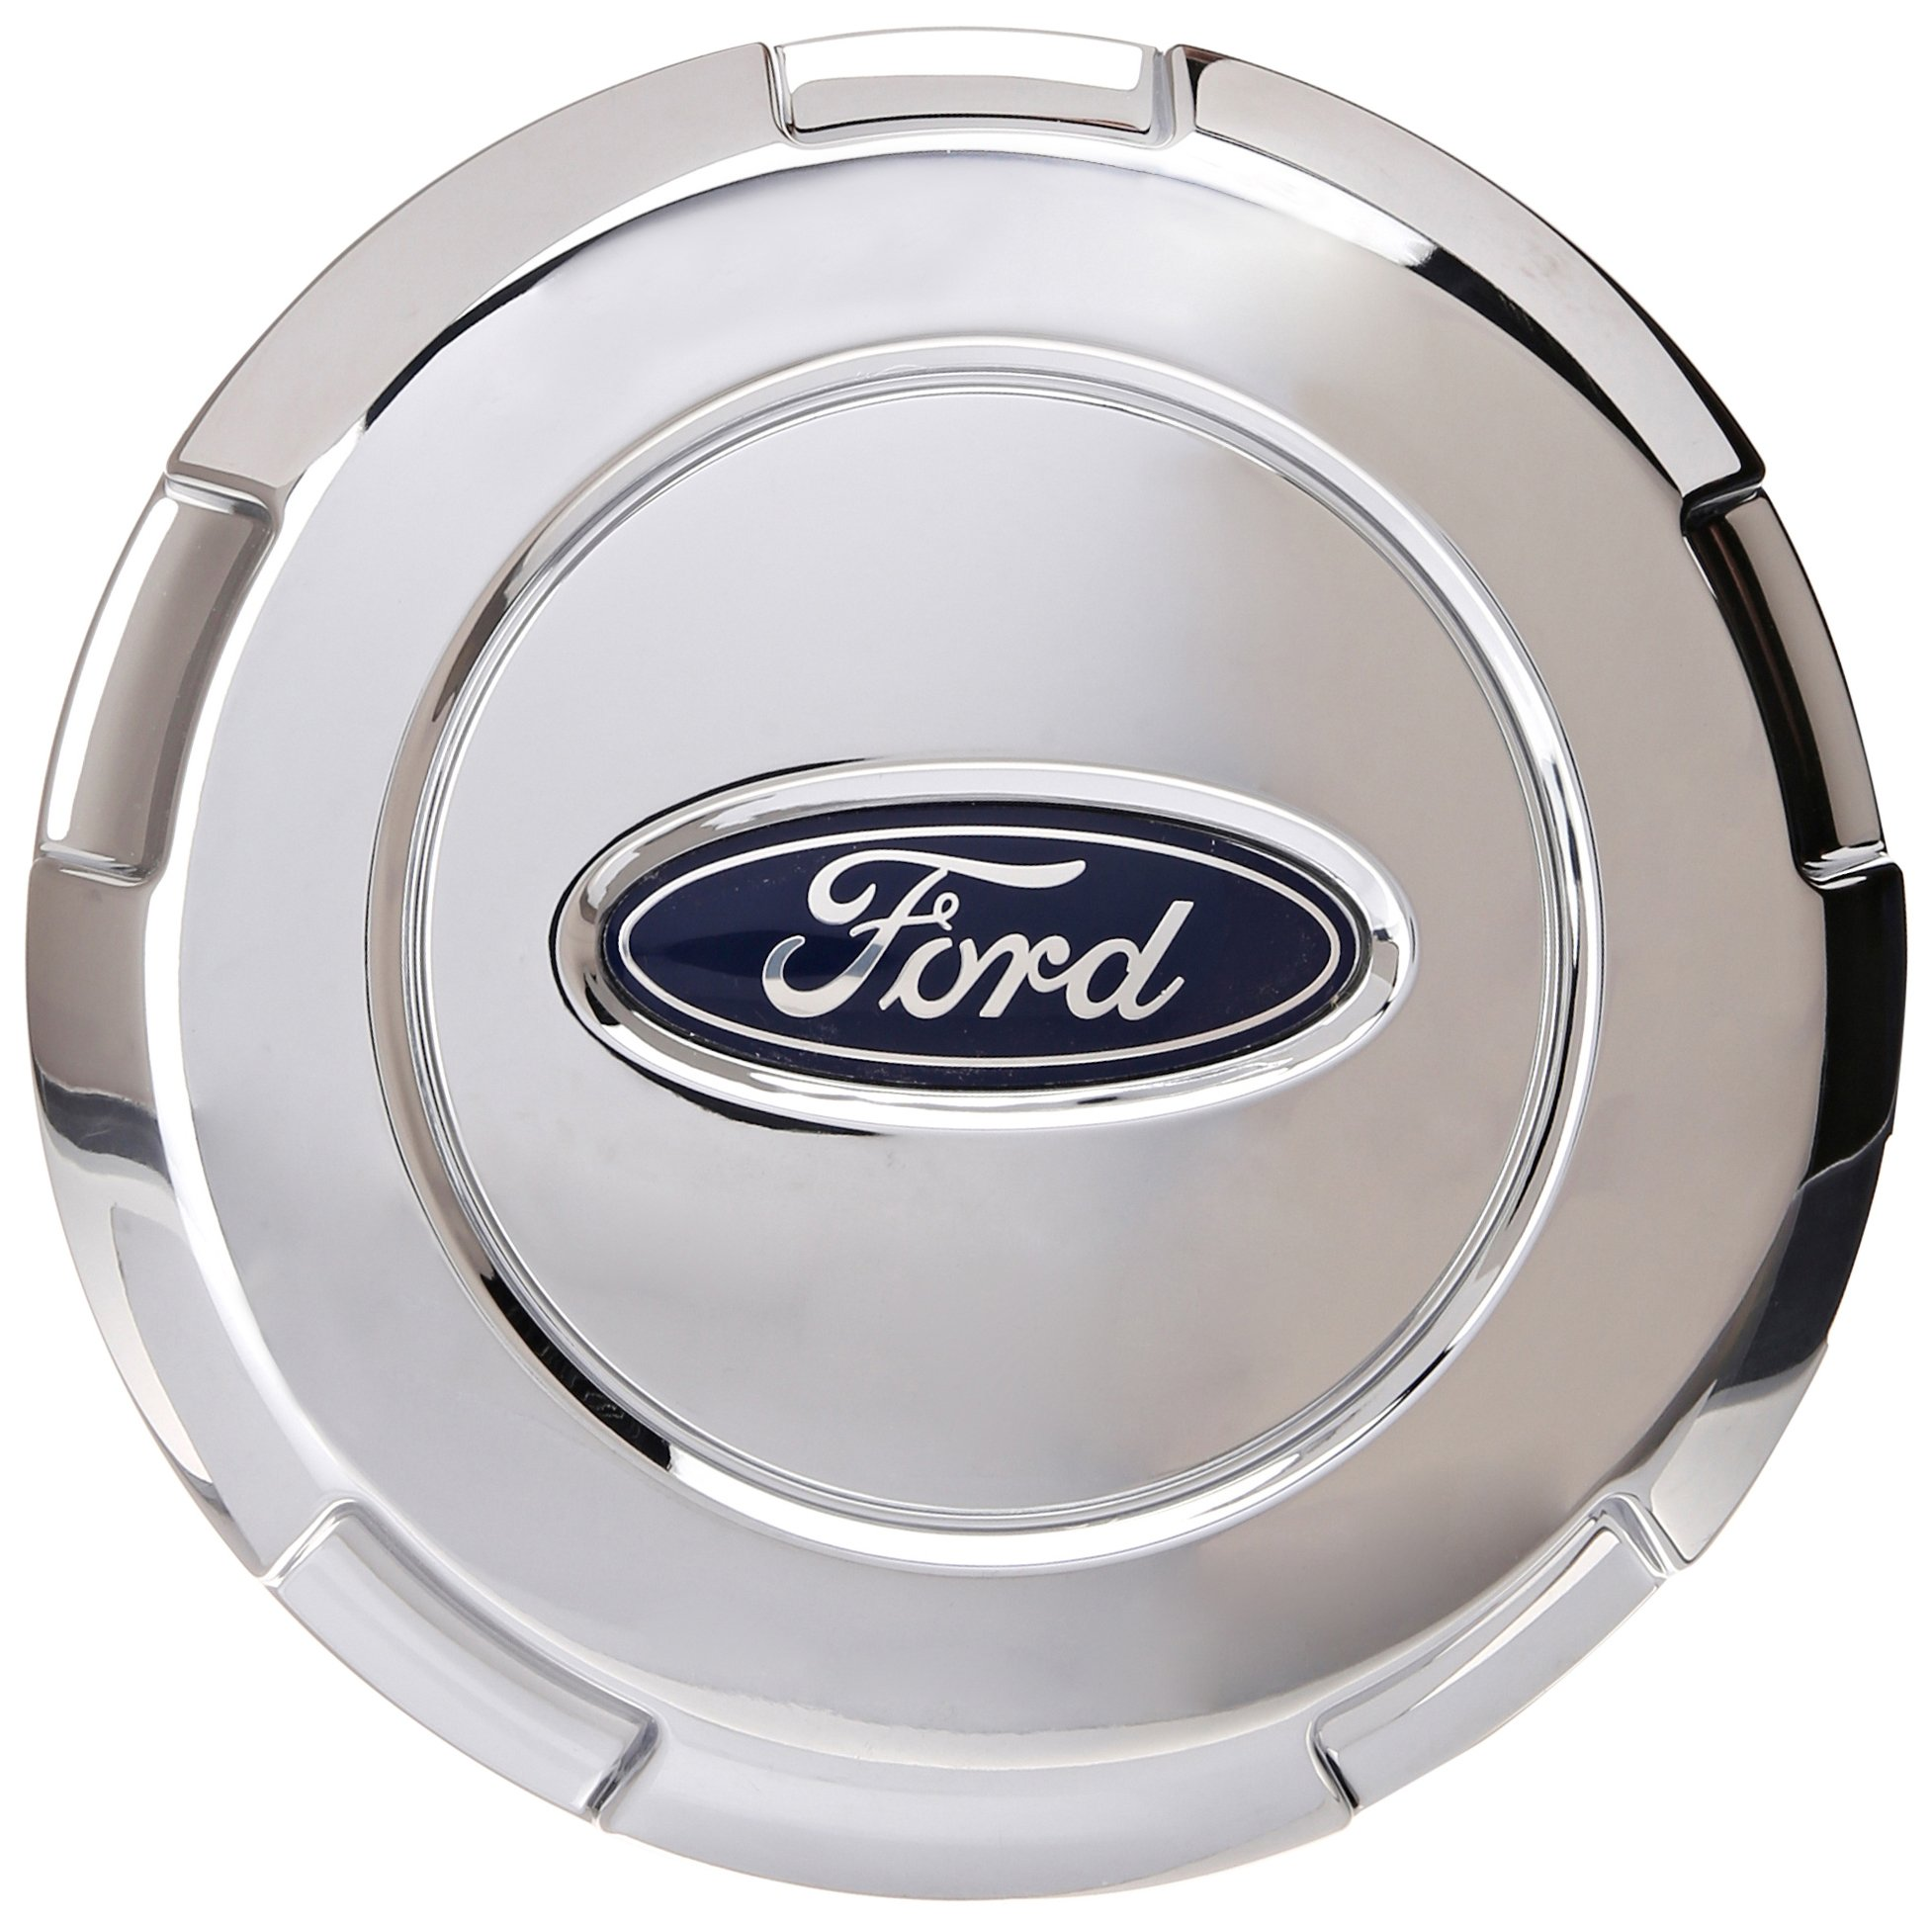 Ford Genuine 4L3Z-1130-AB Center Cap